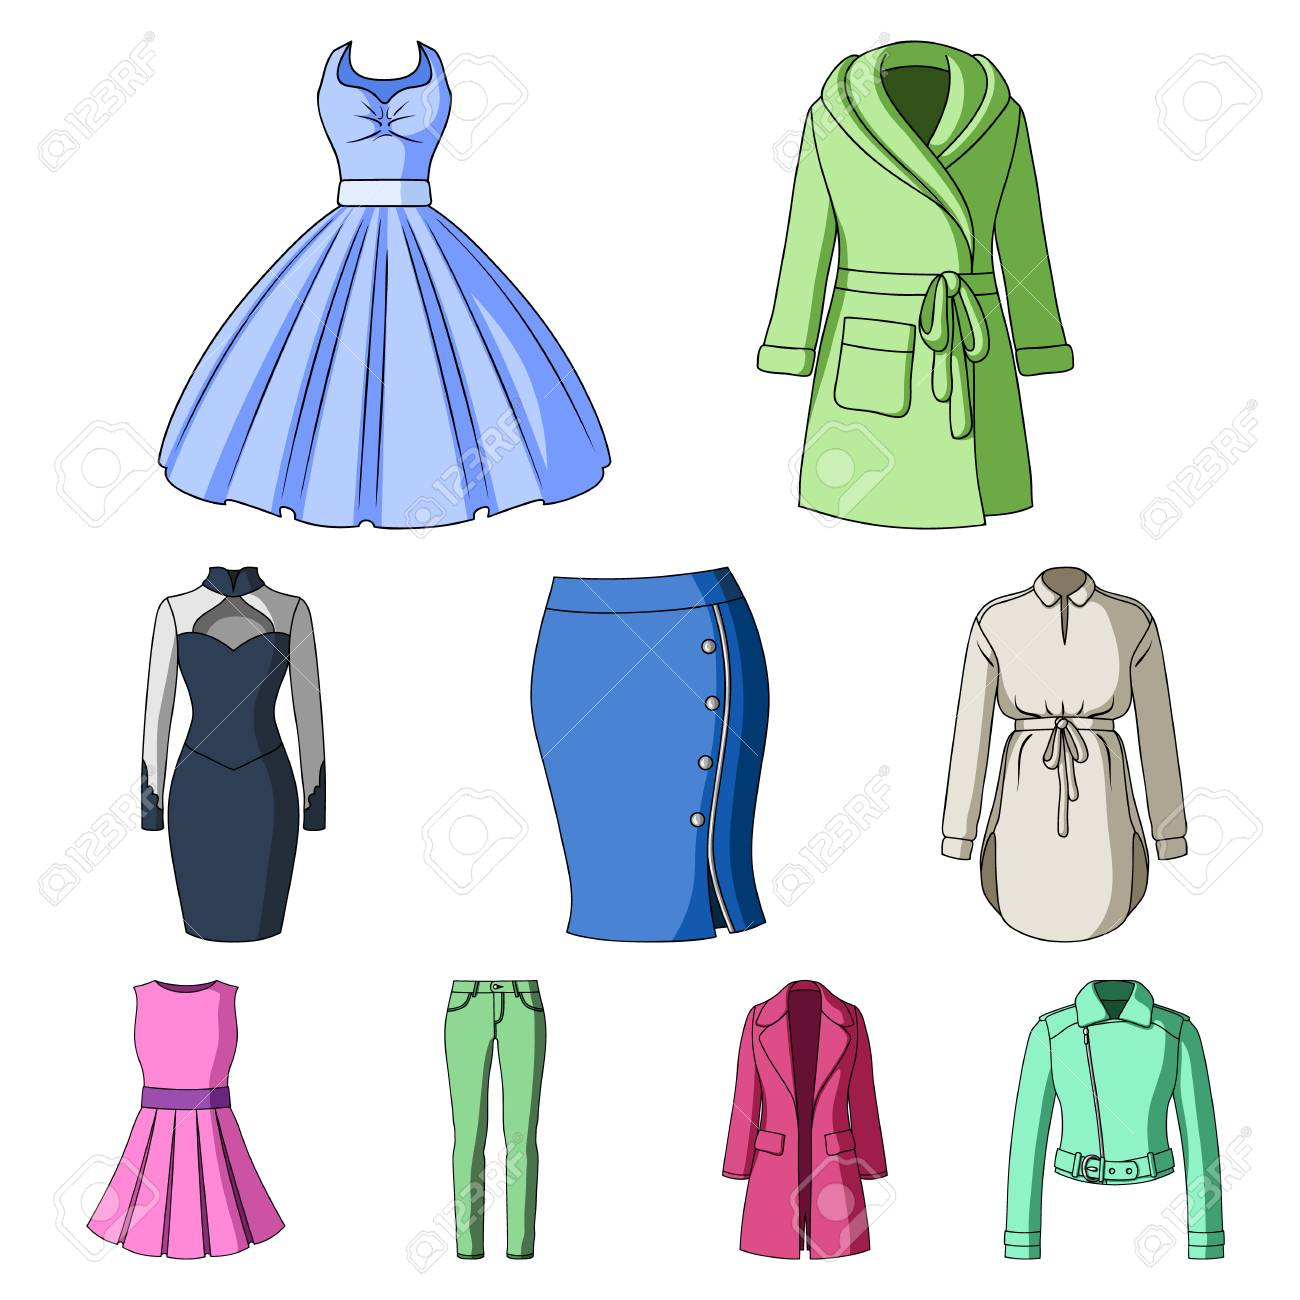 f00f534cab8 Collection of icons of womens clothing. Various womens clothes for work